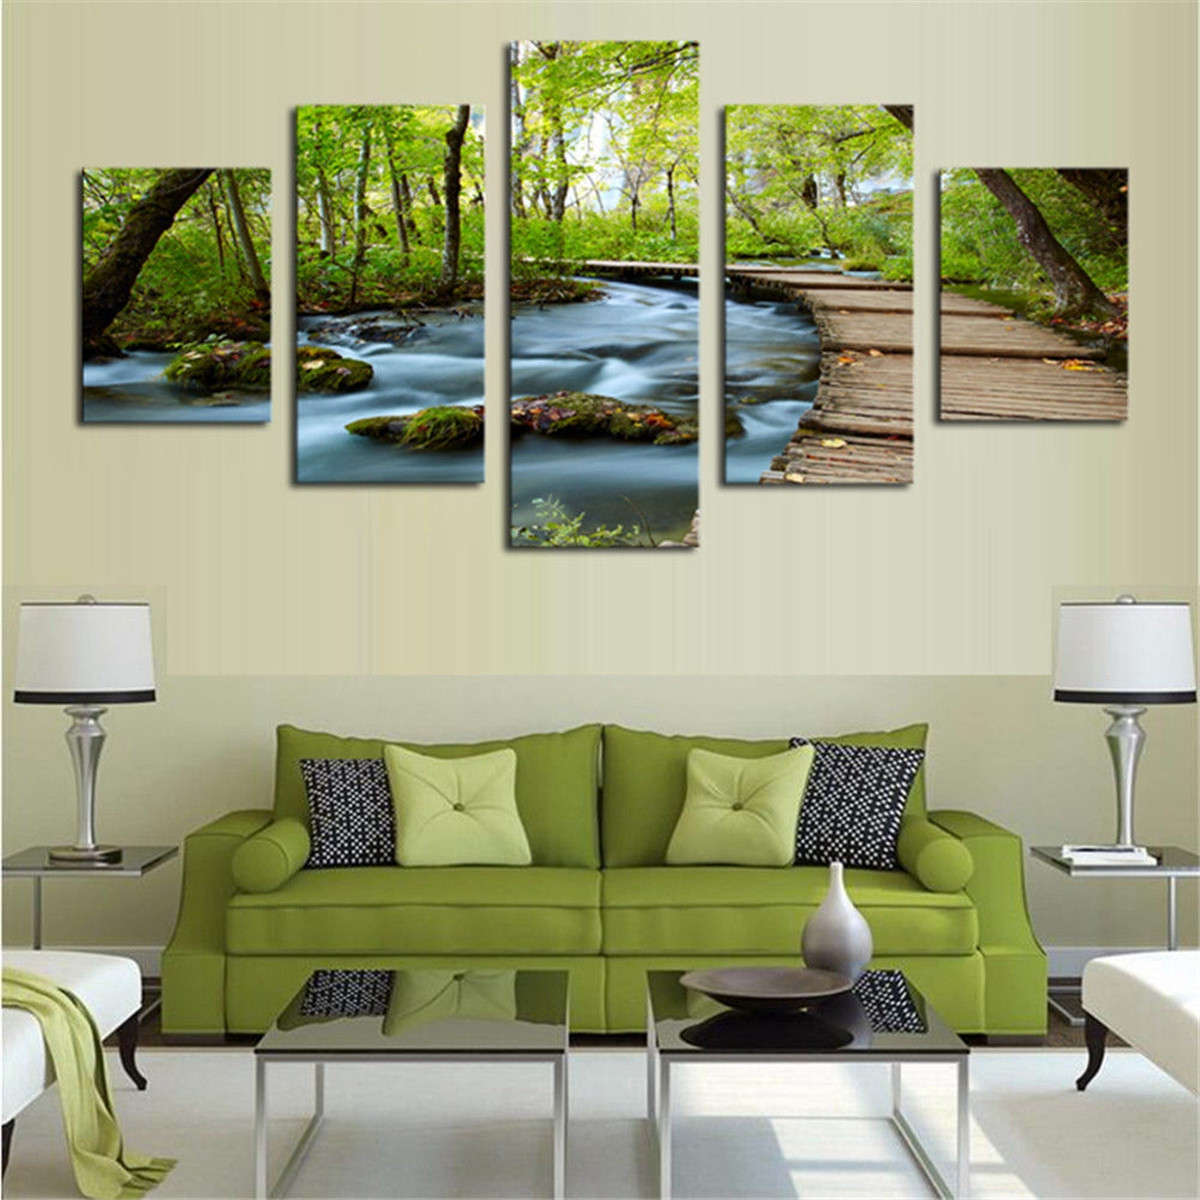 Large Modern Canvas Oil Painting Picture Print Wall Art Home Office Decor Ebay